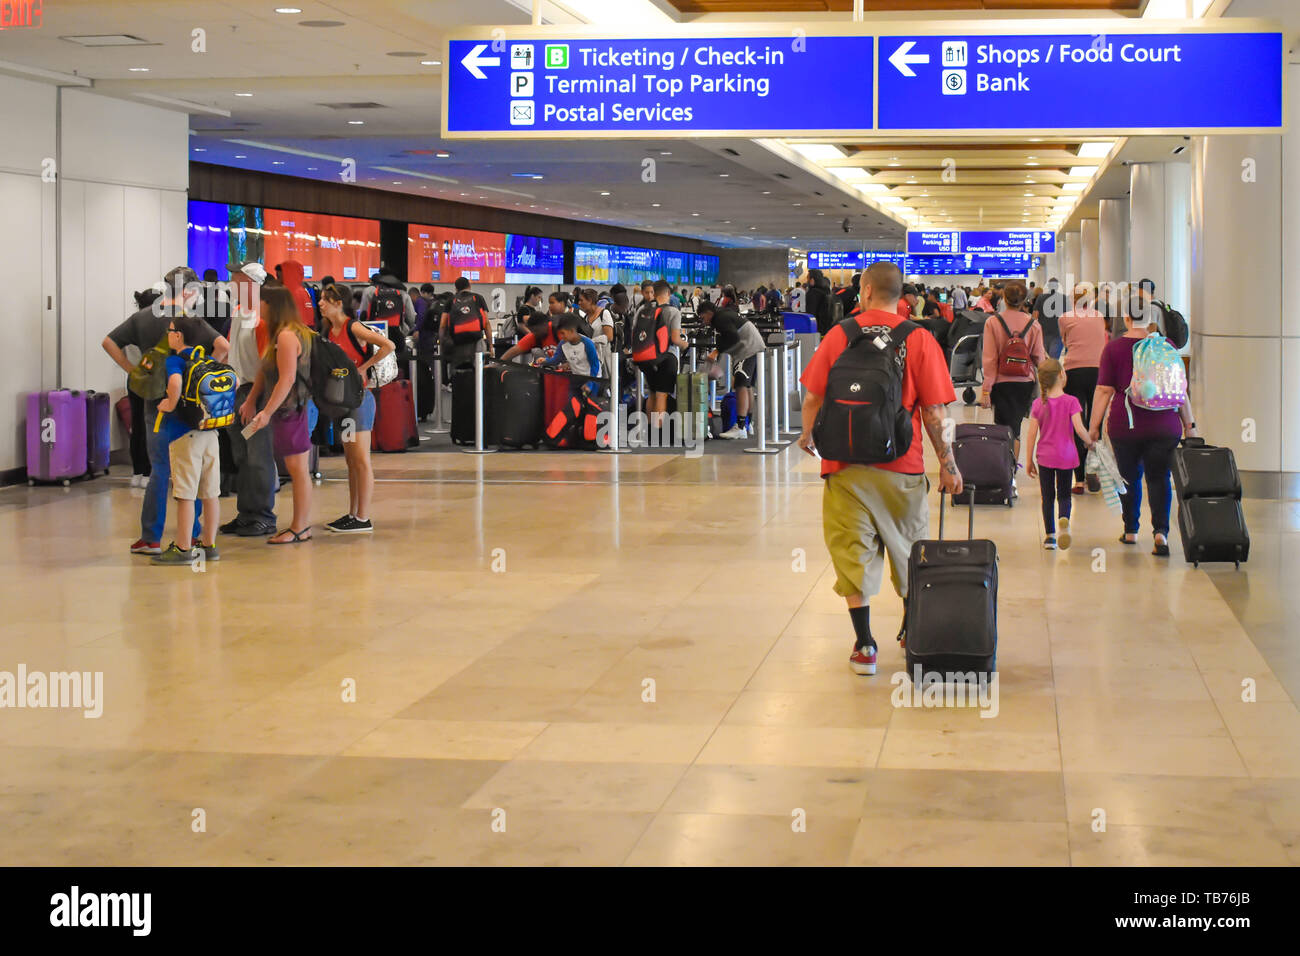 Orlando, Florida.  March 01, 2019. People walking in Check-in and Ticketing area at Orlando International Airport  (2) - Stock Image